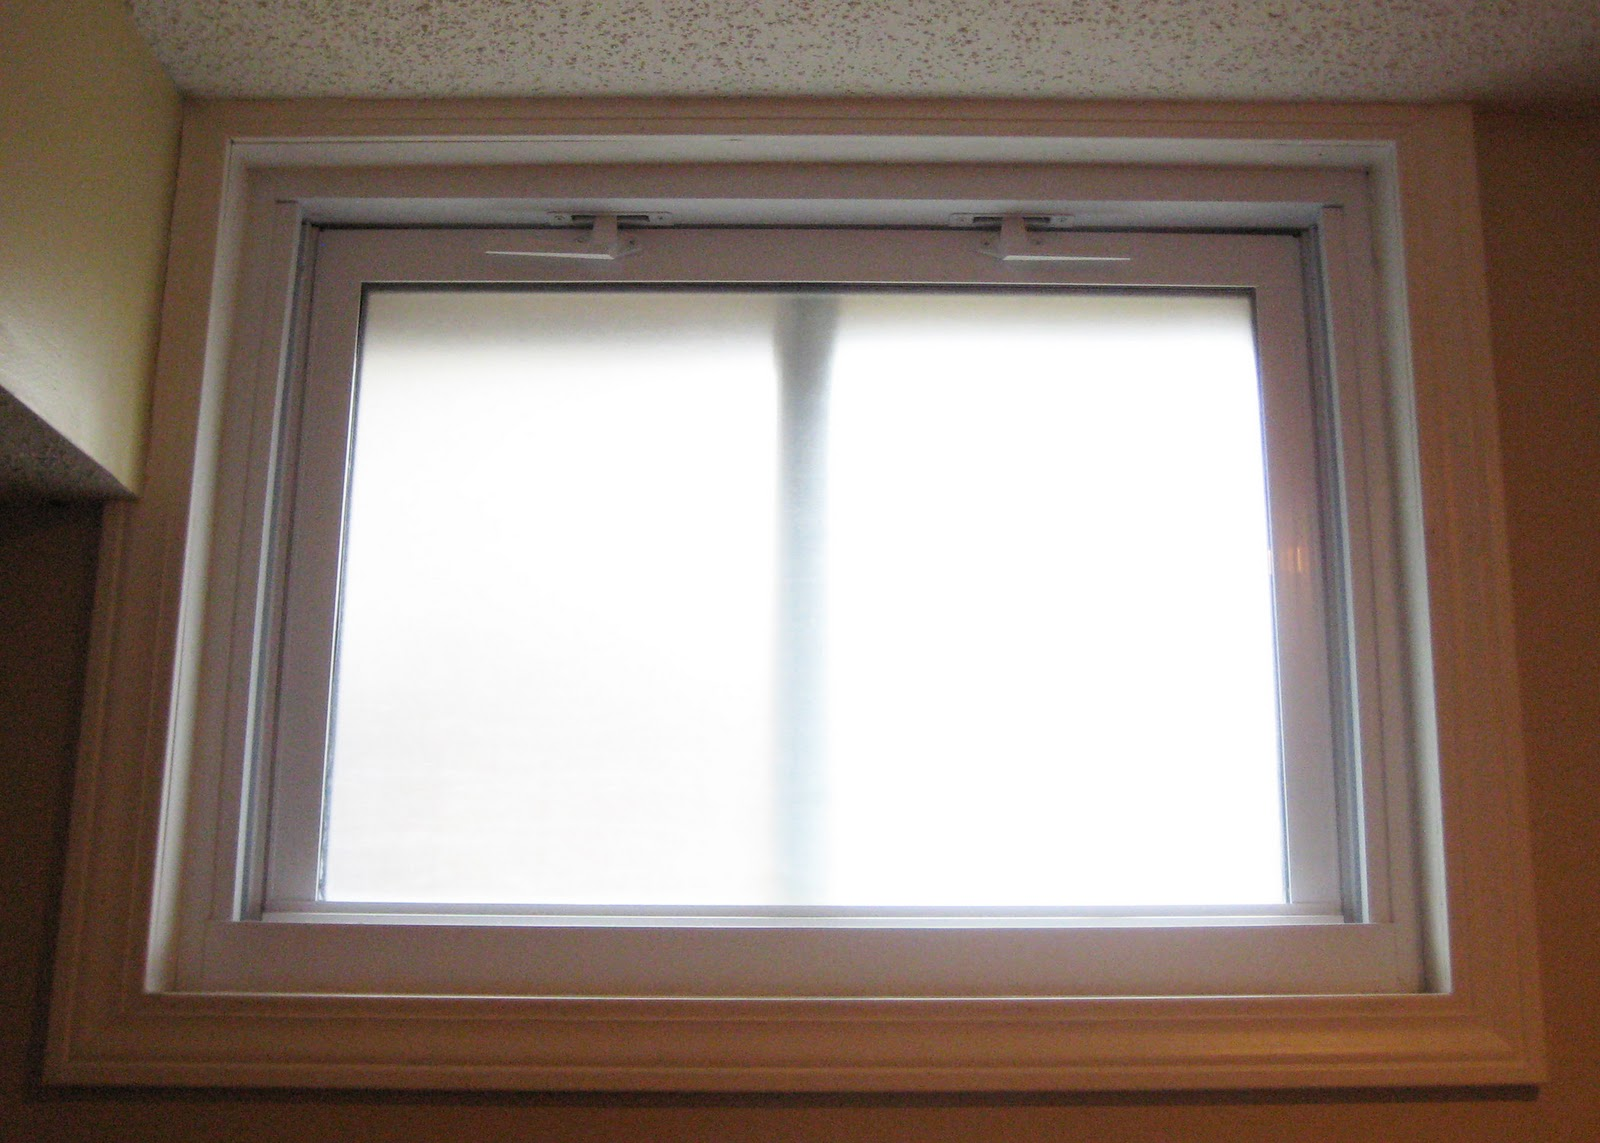 Tallgrass design basement window solution for Window design solutions